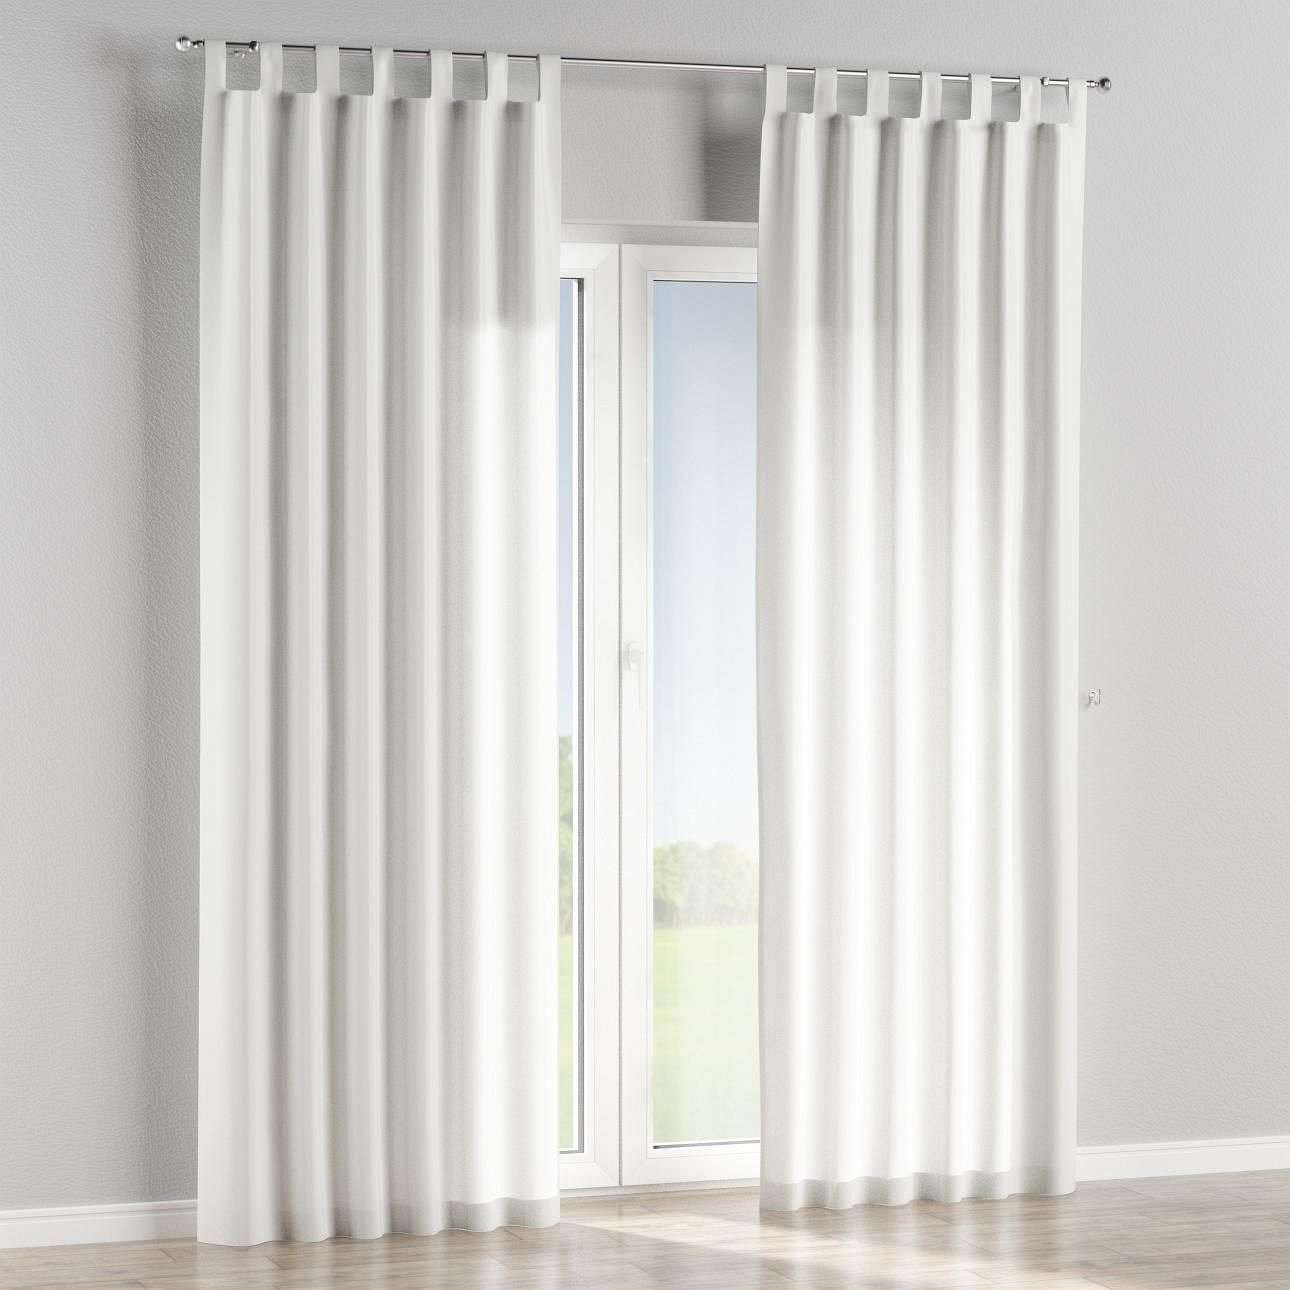 Tab top curtains in collection SALE, fabric: 103-88